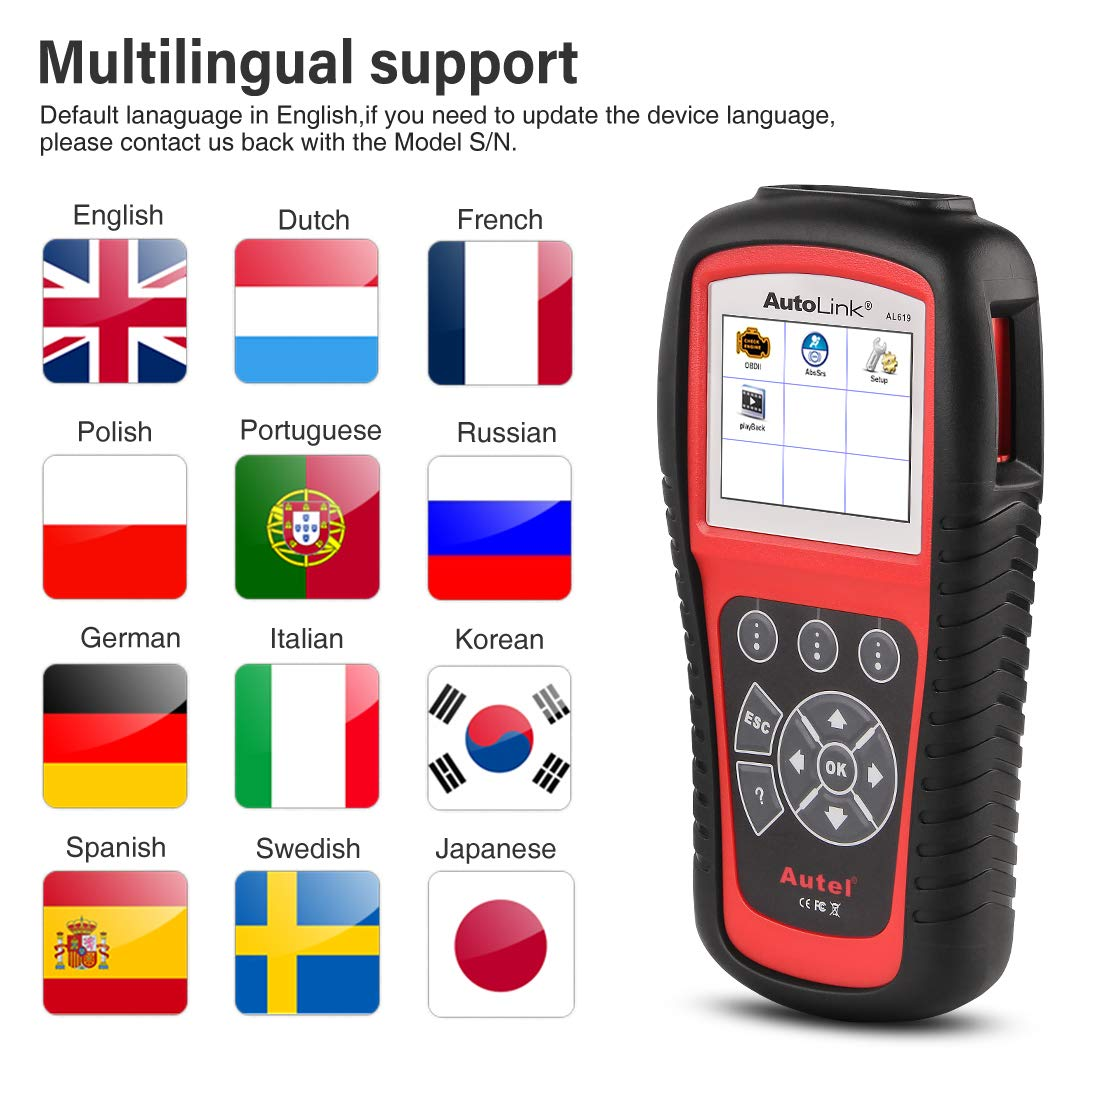 Autel AutoLink AL619 OBD2 Scanner ABS/SRS Diagnostic Scan Tool,Turns Off Engine Light (MIL) and ABS/SRS Warning Lights,Same Function as The ML619 Code Reader by Autel (Image #7)